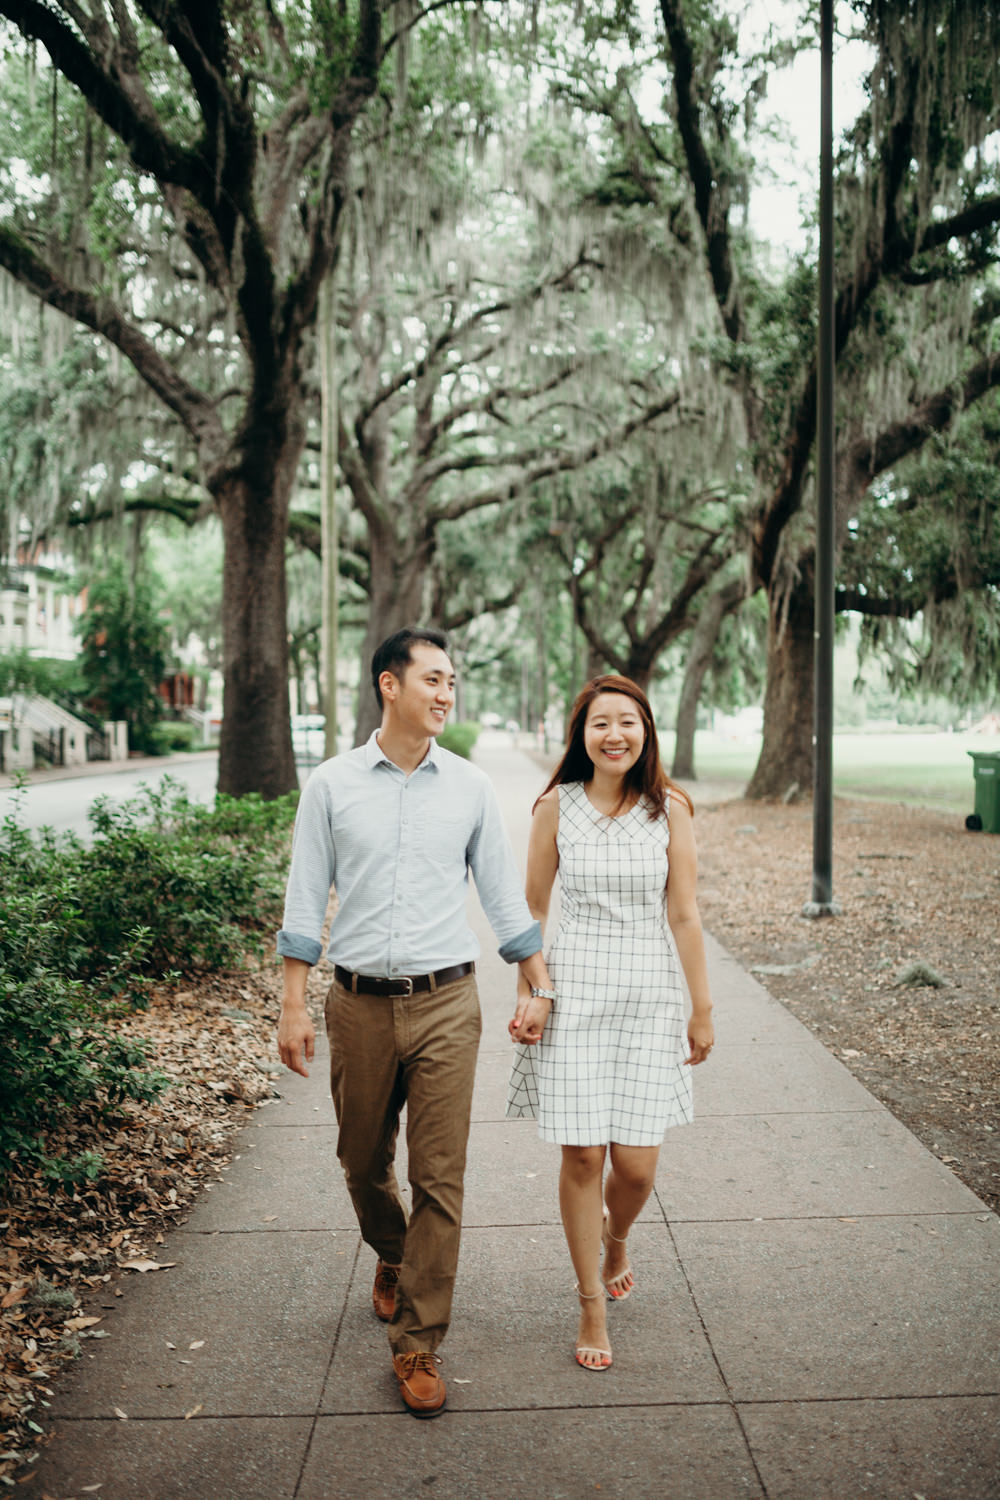 savannahengagement-2025.jpg